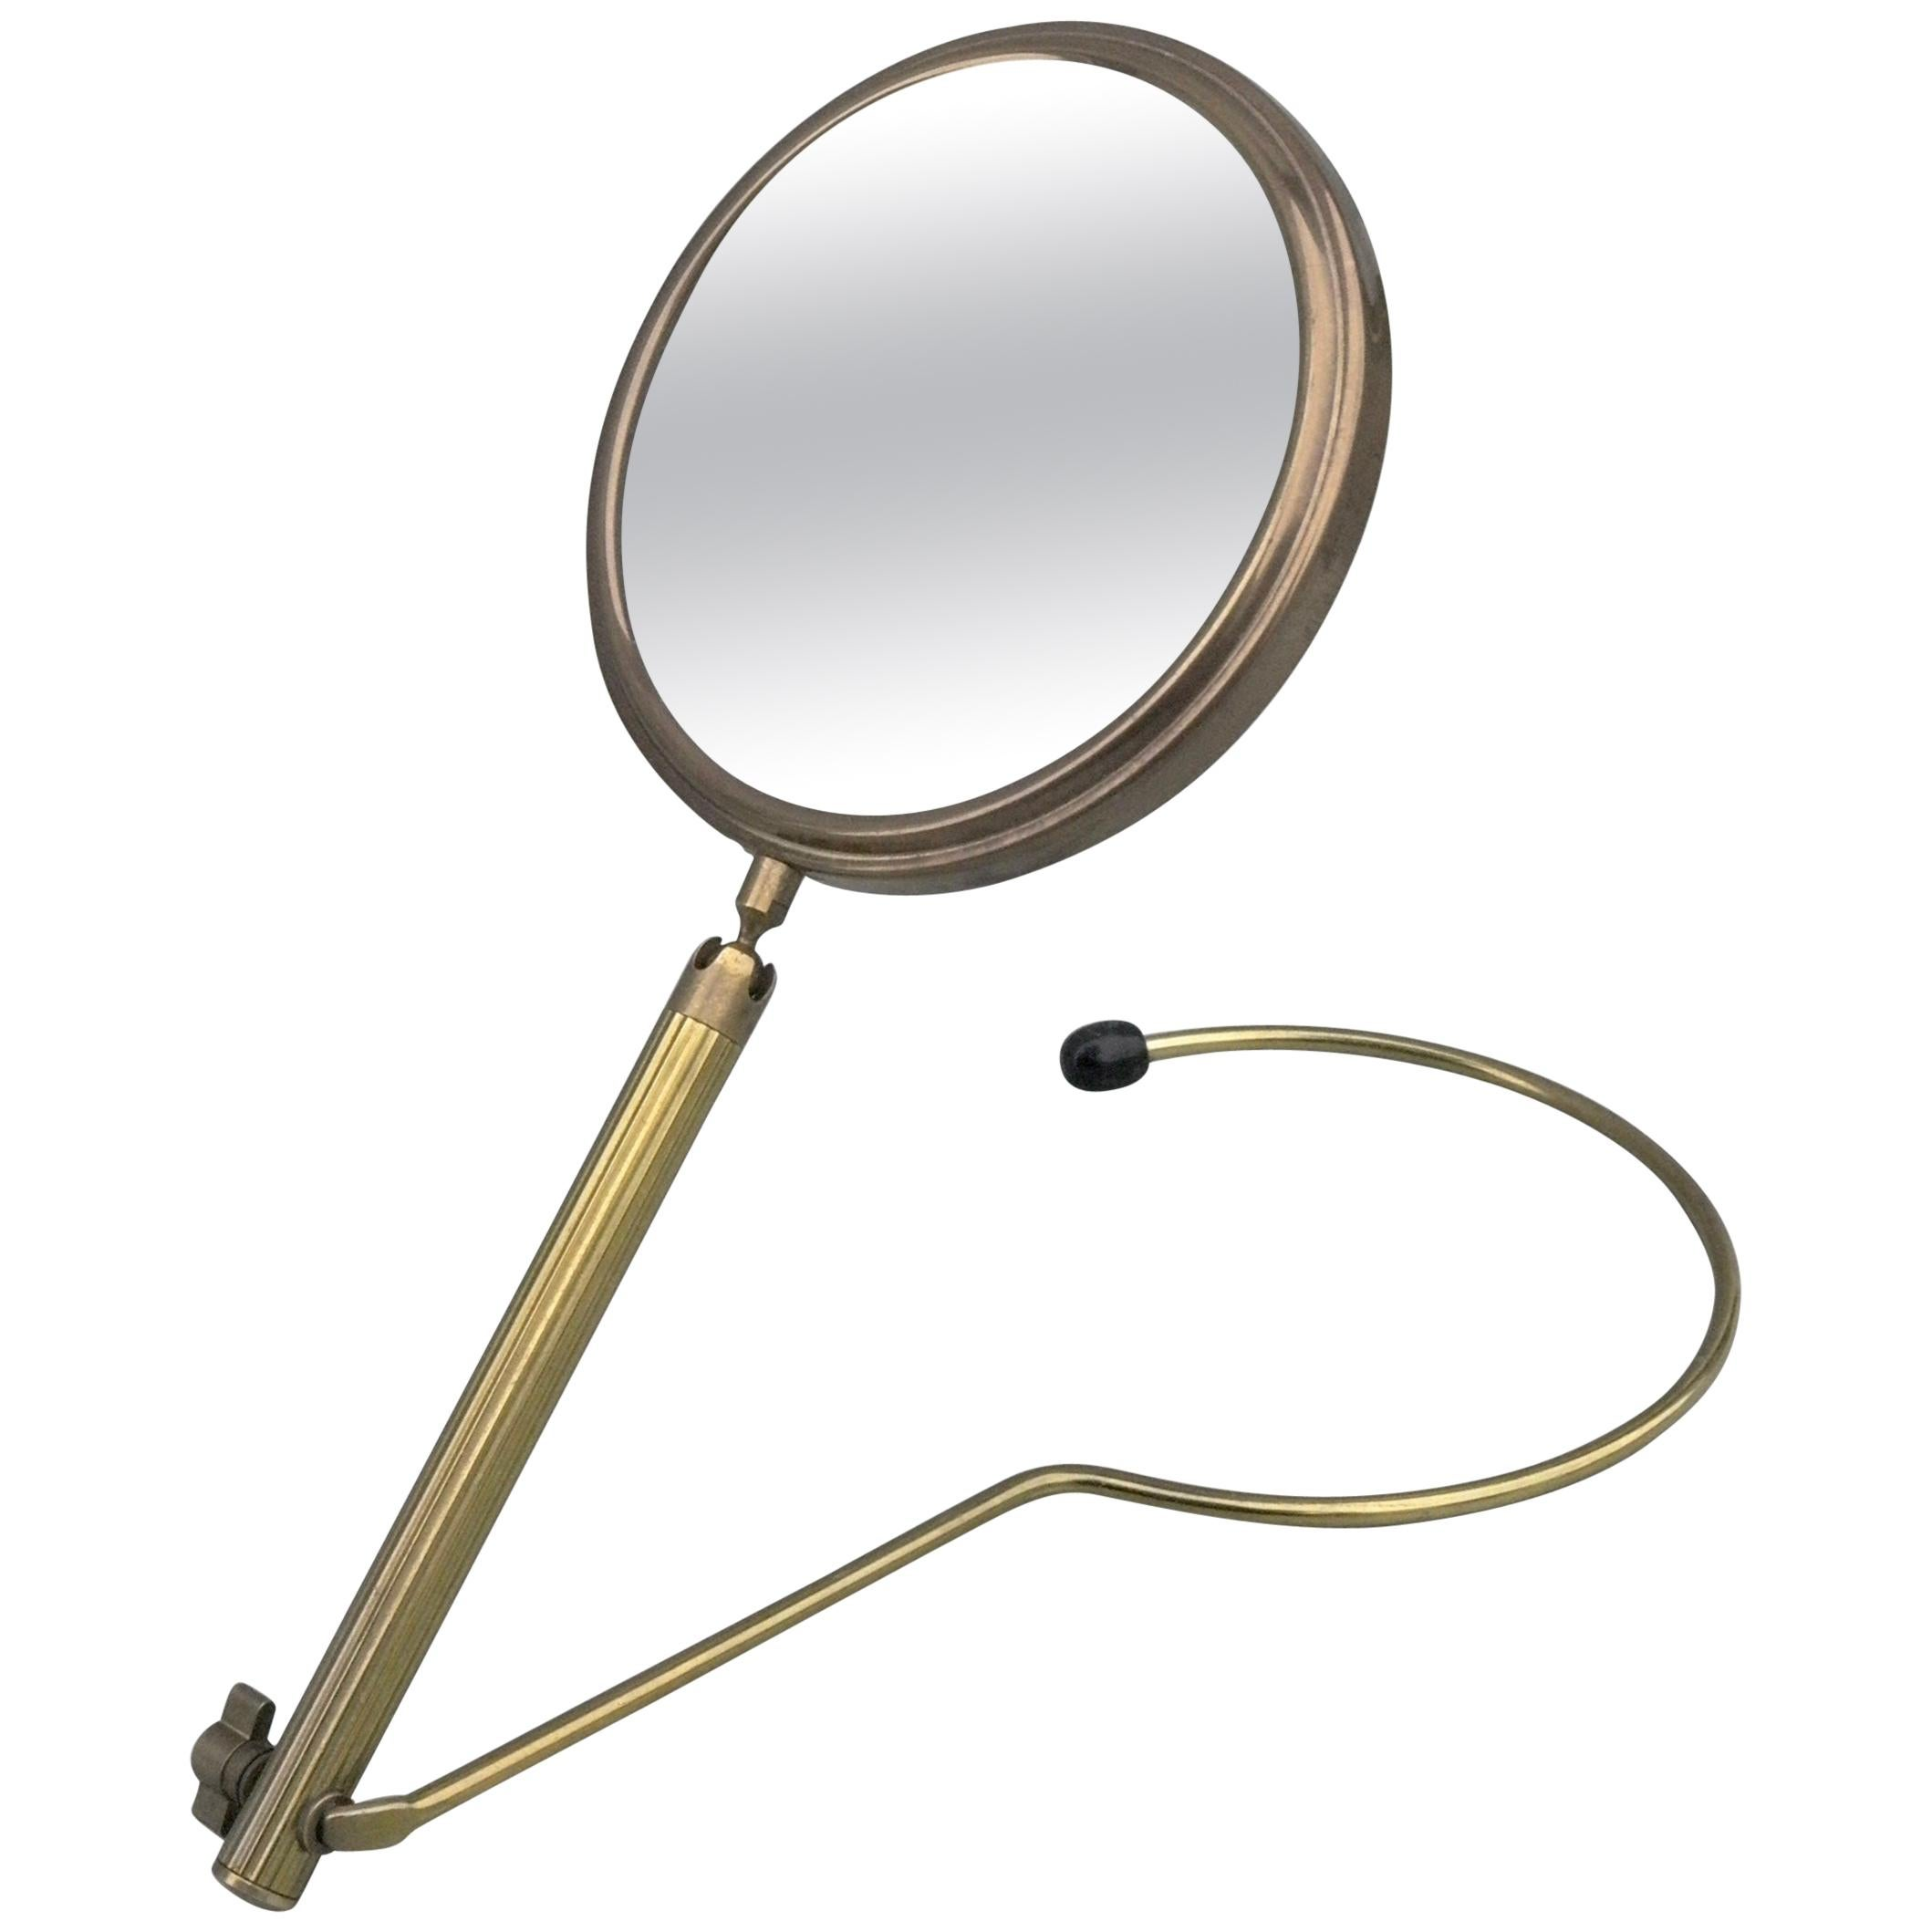 Elegant Brass Wall or Table Make Up Vanity Mirror, France, 1950s